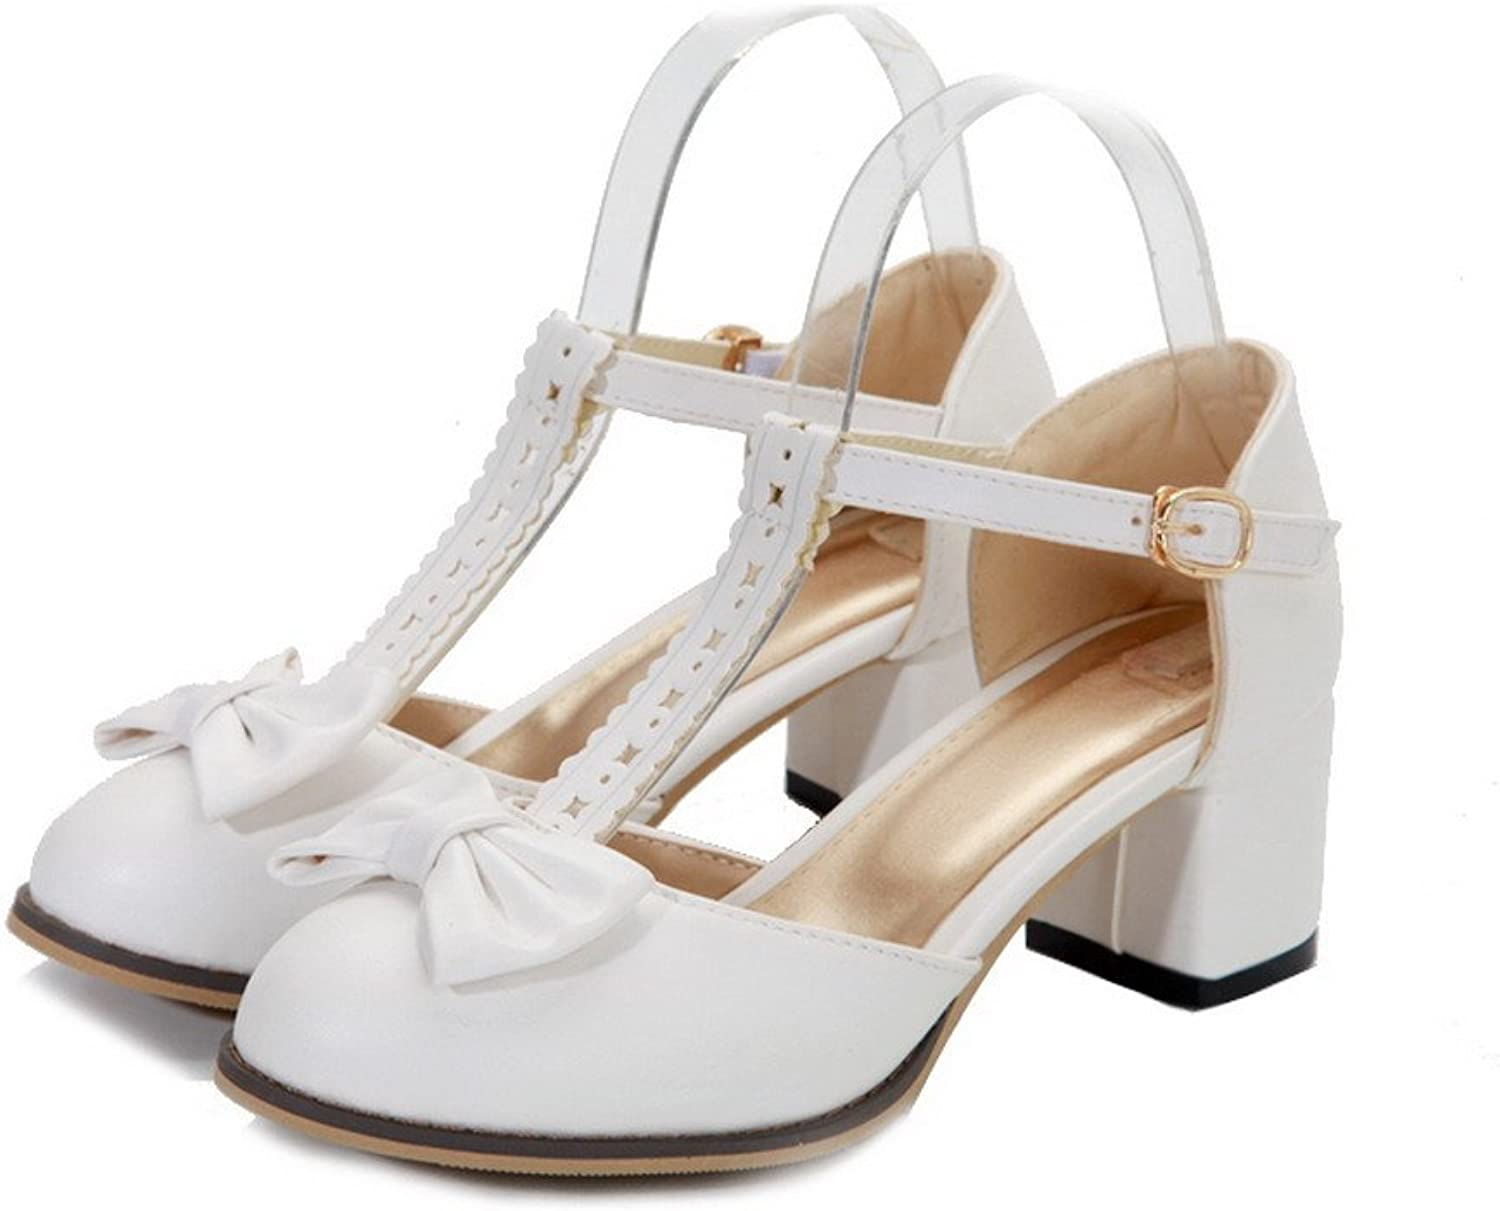 AmoonyFashion Womens Closed Round Toe Mid Heel Soft Material PU Solid Sandals with Bowknot, White, 10 B(M) US